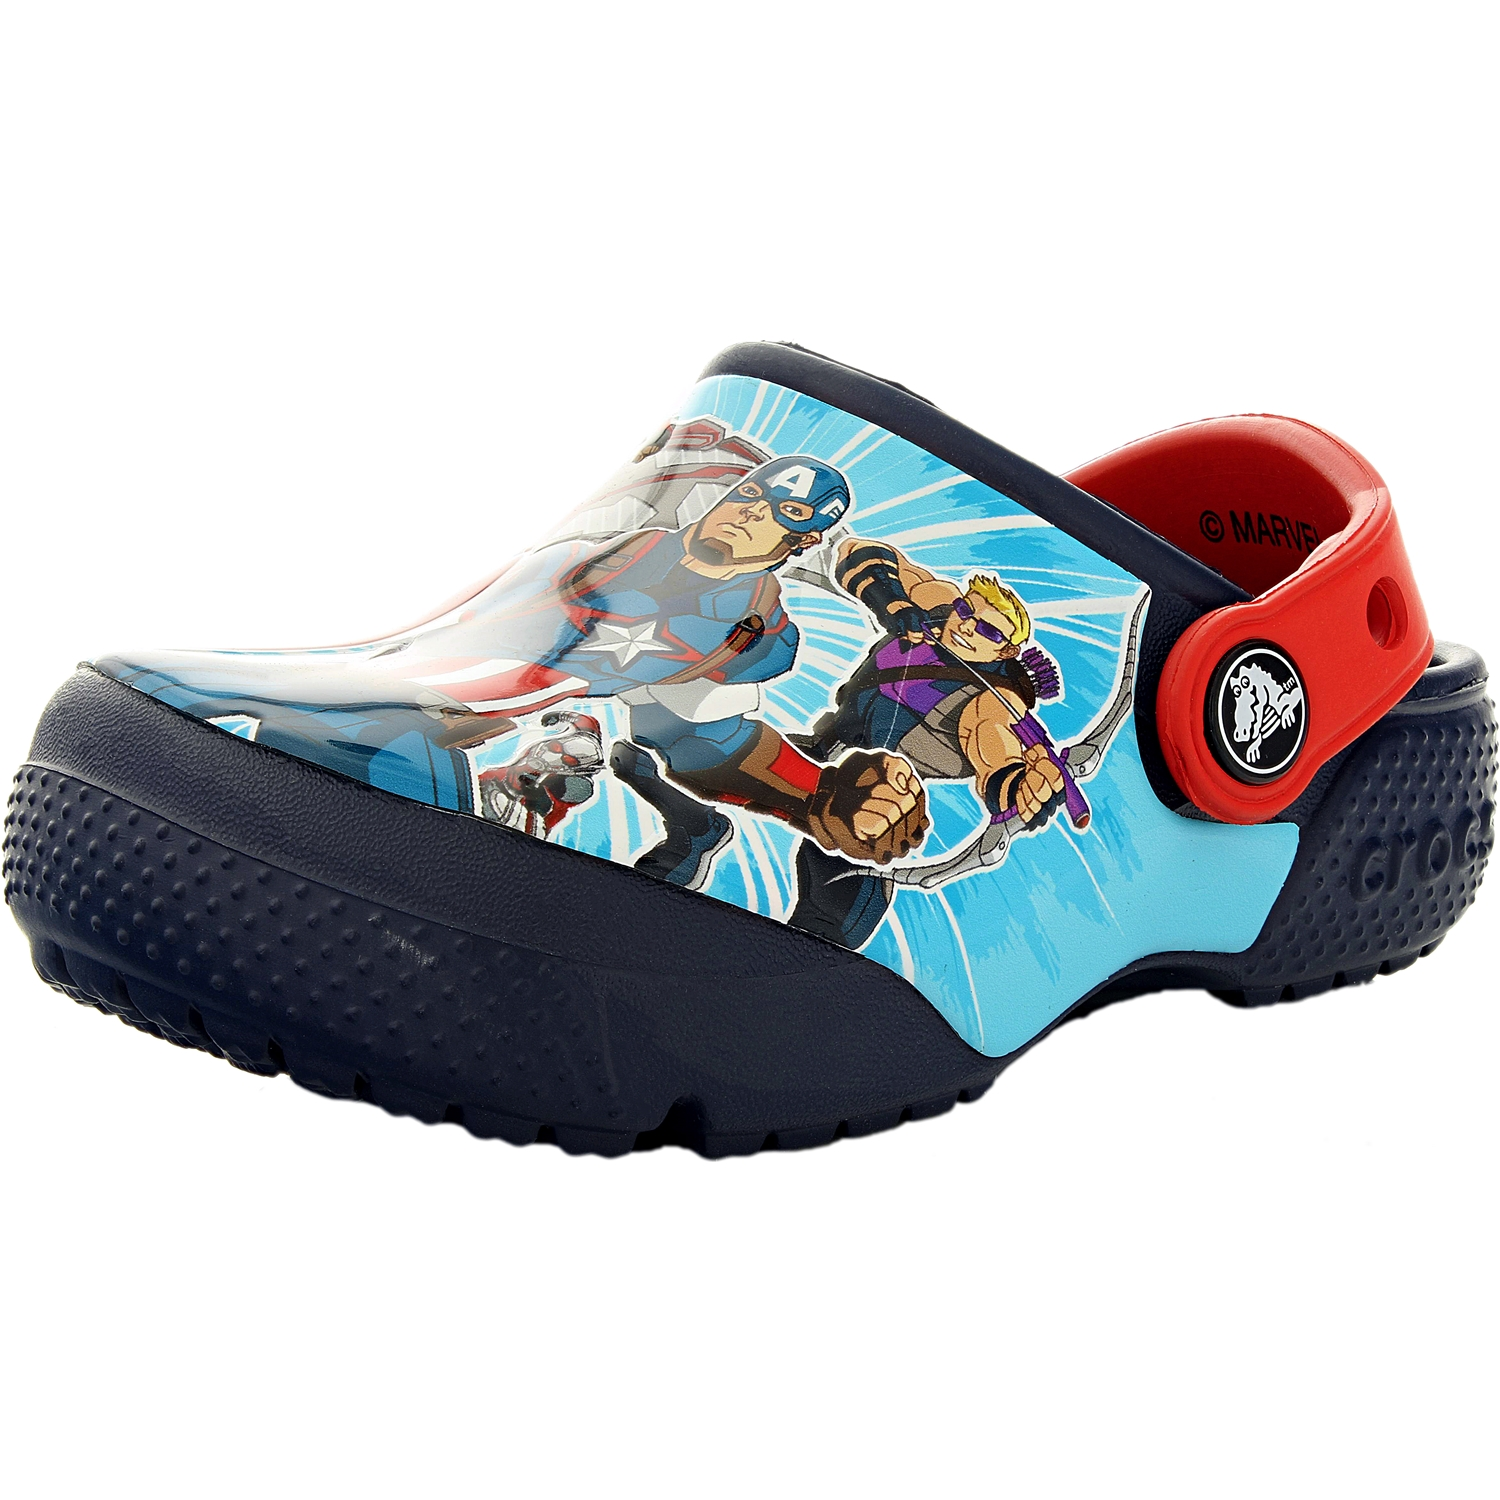 Crocs Boy's Crocsfunlab Marvel Avengers Navy Ankle-High Flat Shoe 5M by Crocs